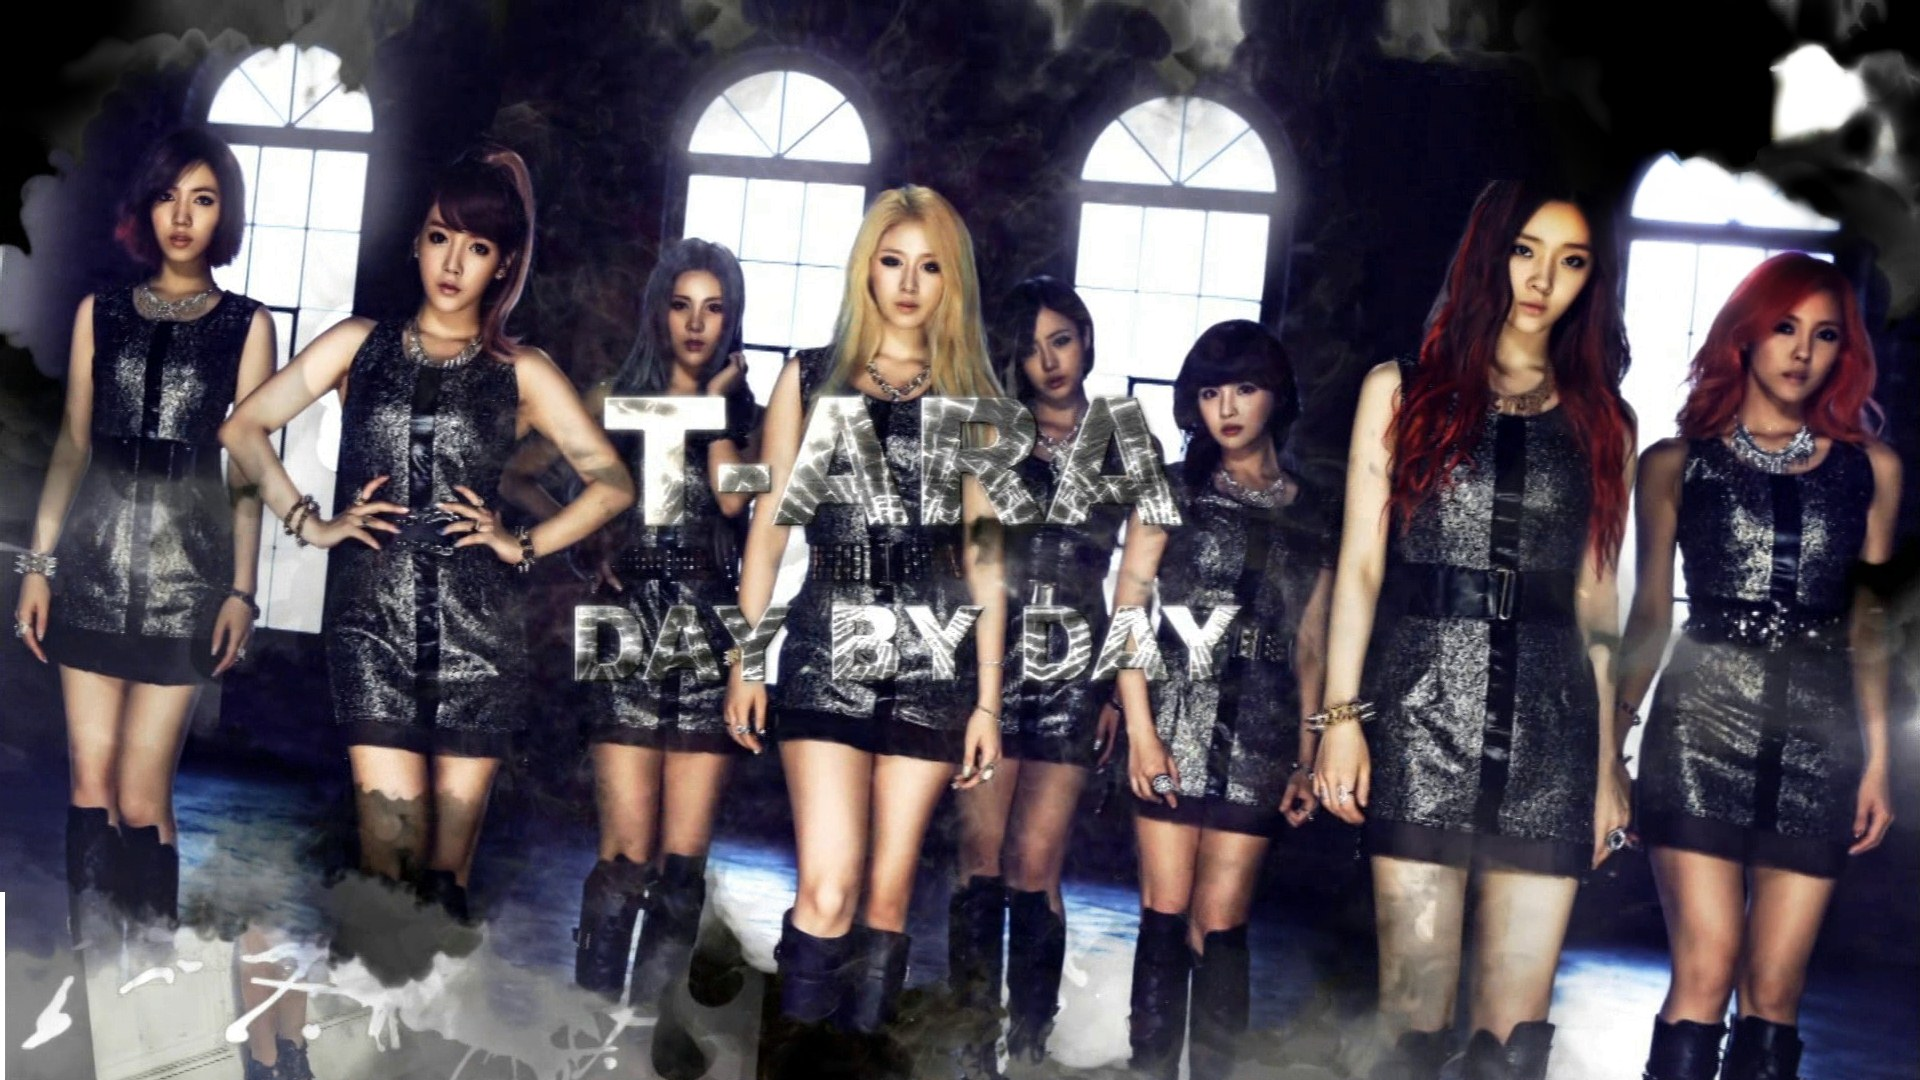 T-ara Day by Day | Asia 24/7